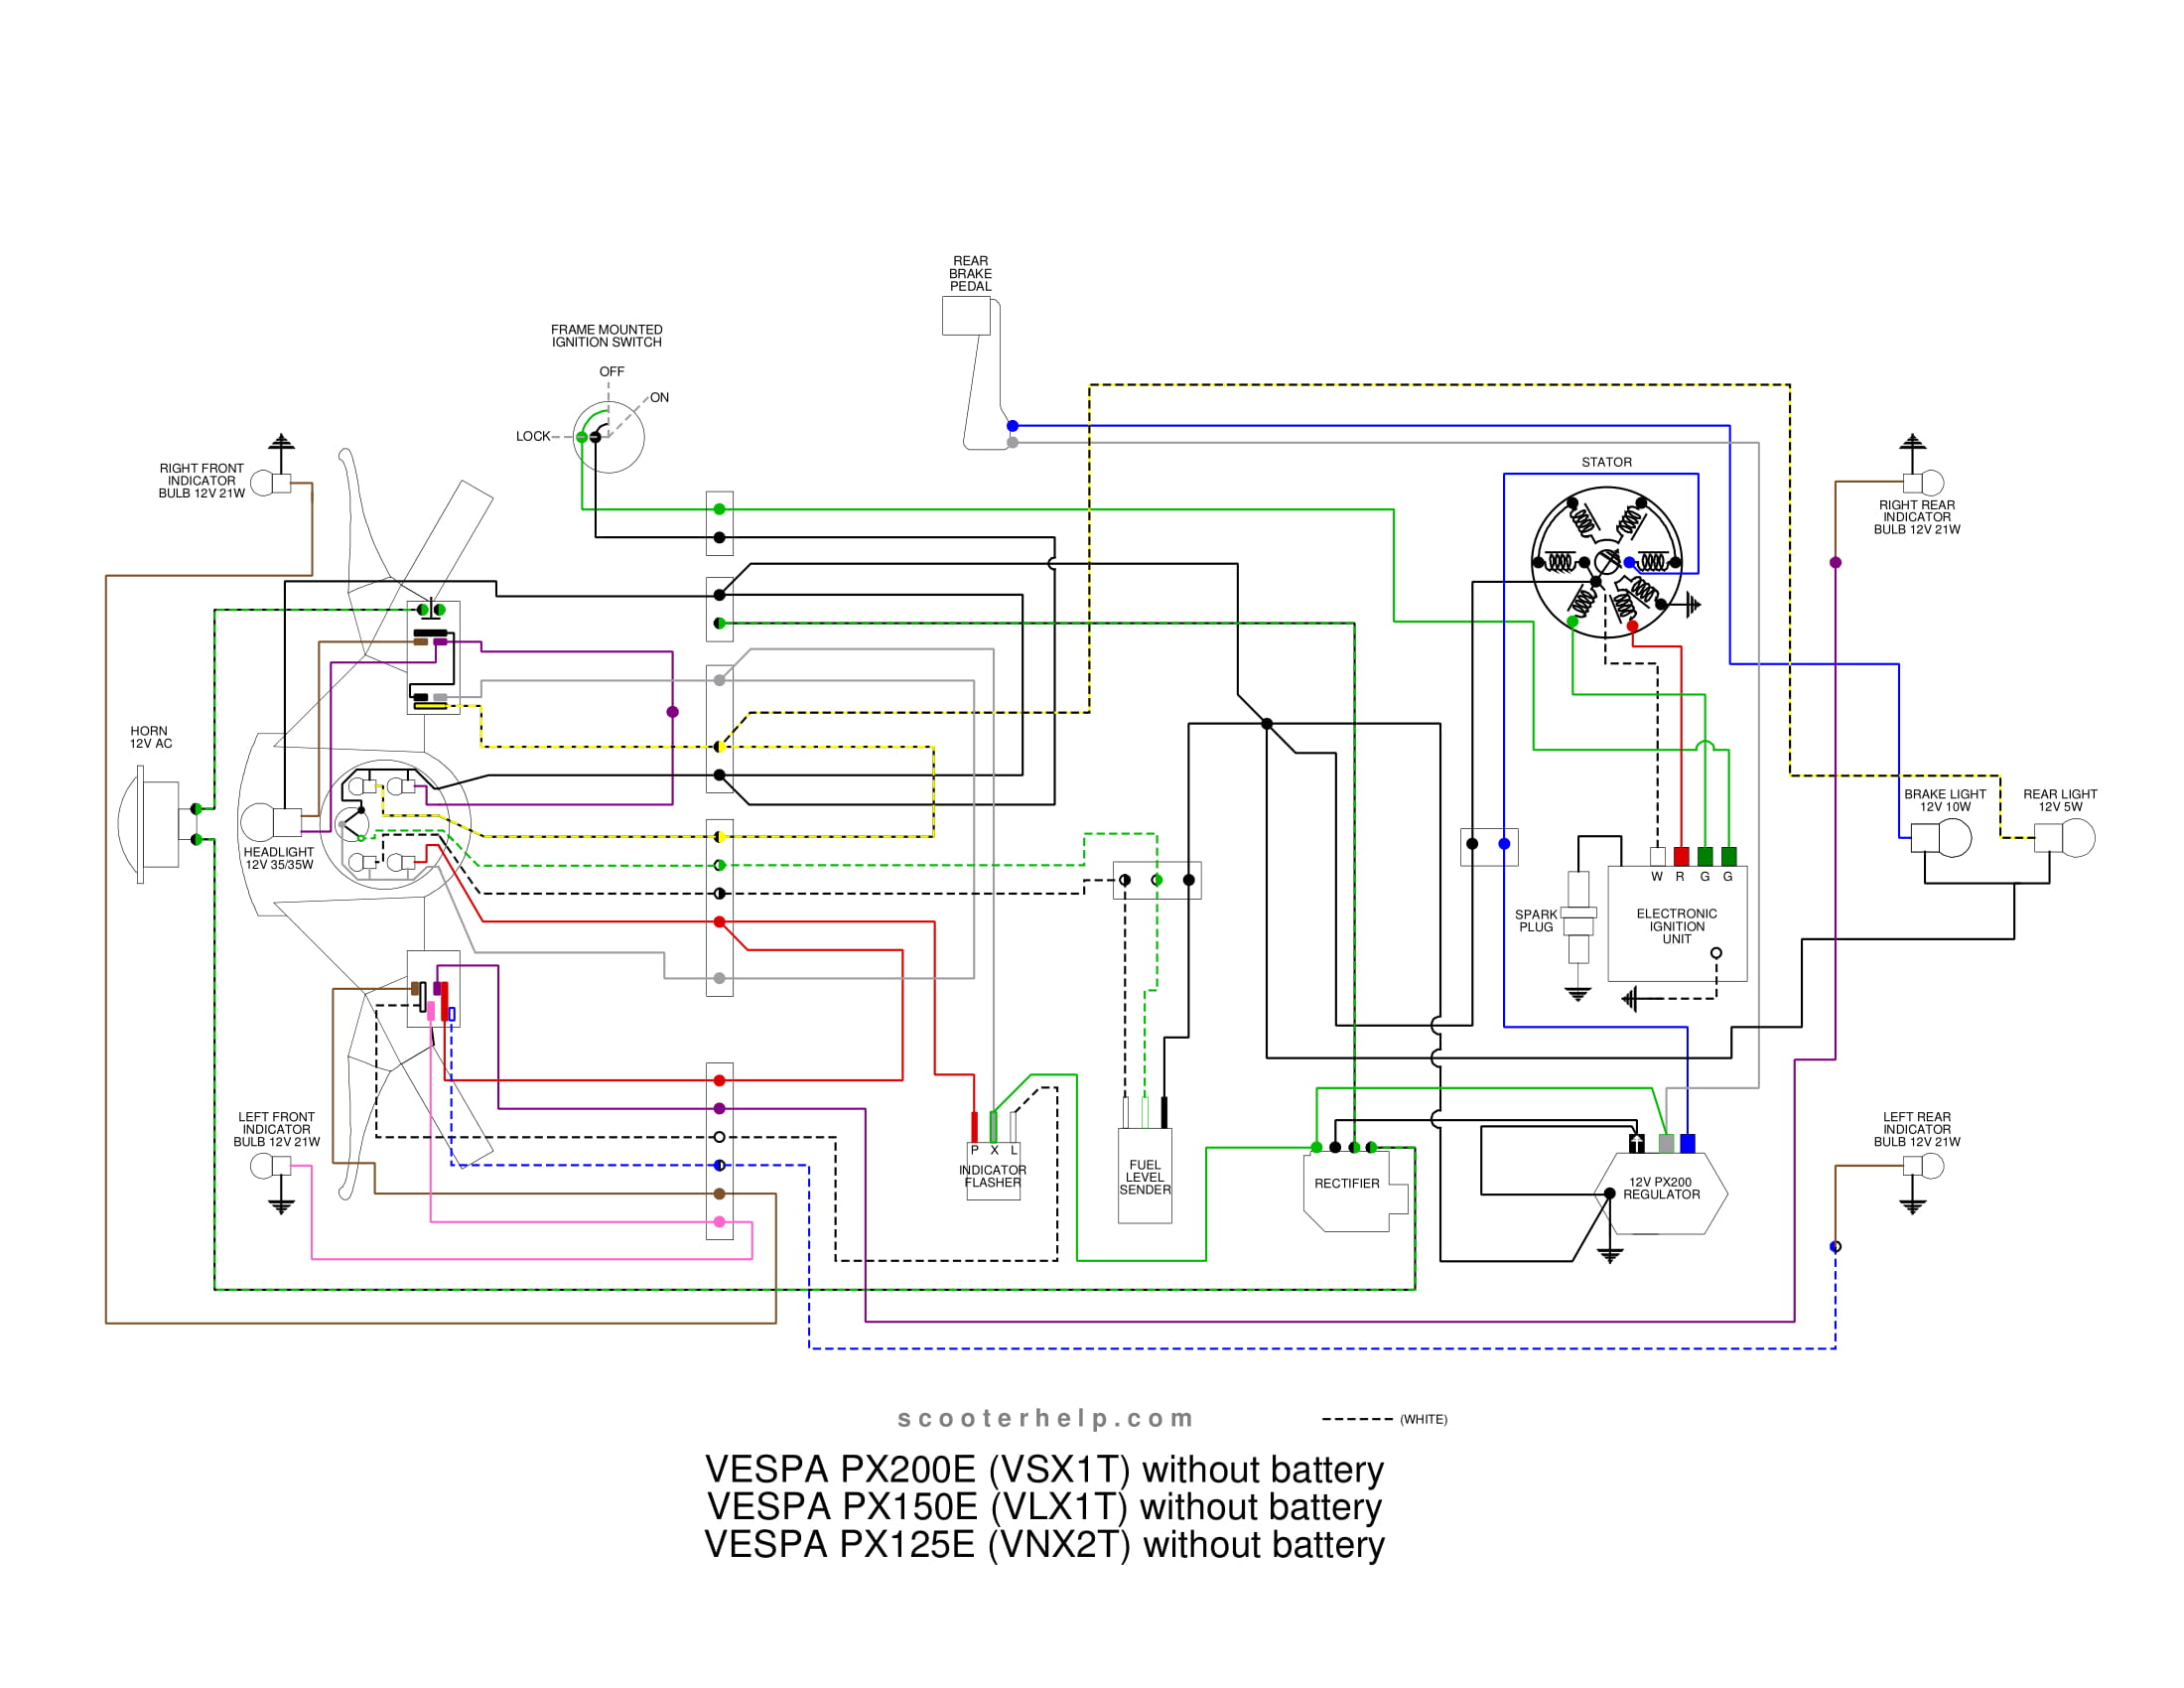 VSX1T.px200e.nobatt scooter help px200e (vsxit) vespa px 150 wiring diagram at bakdesigns.co